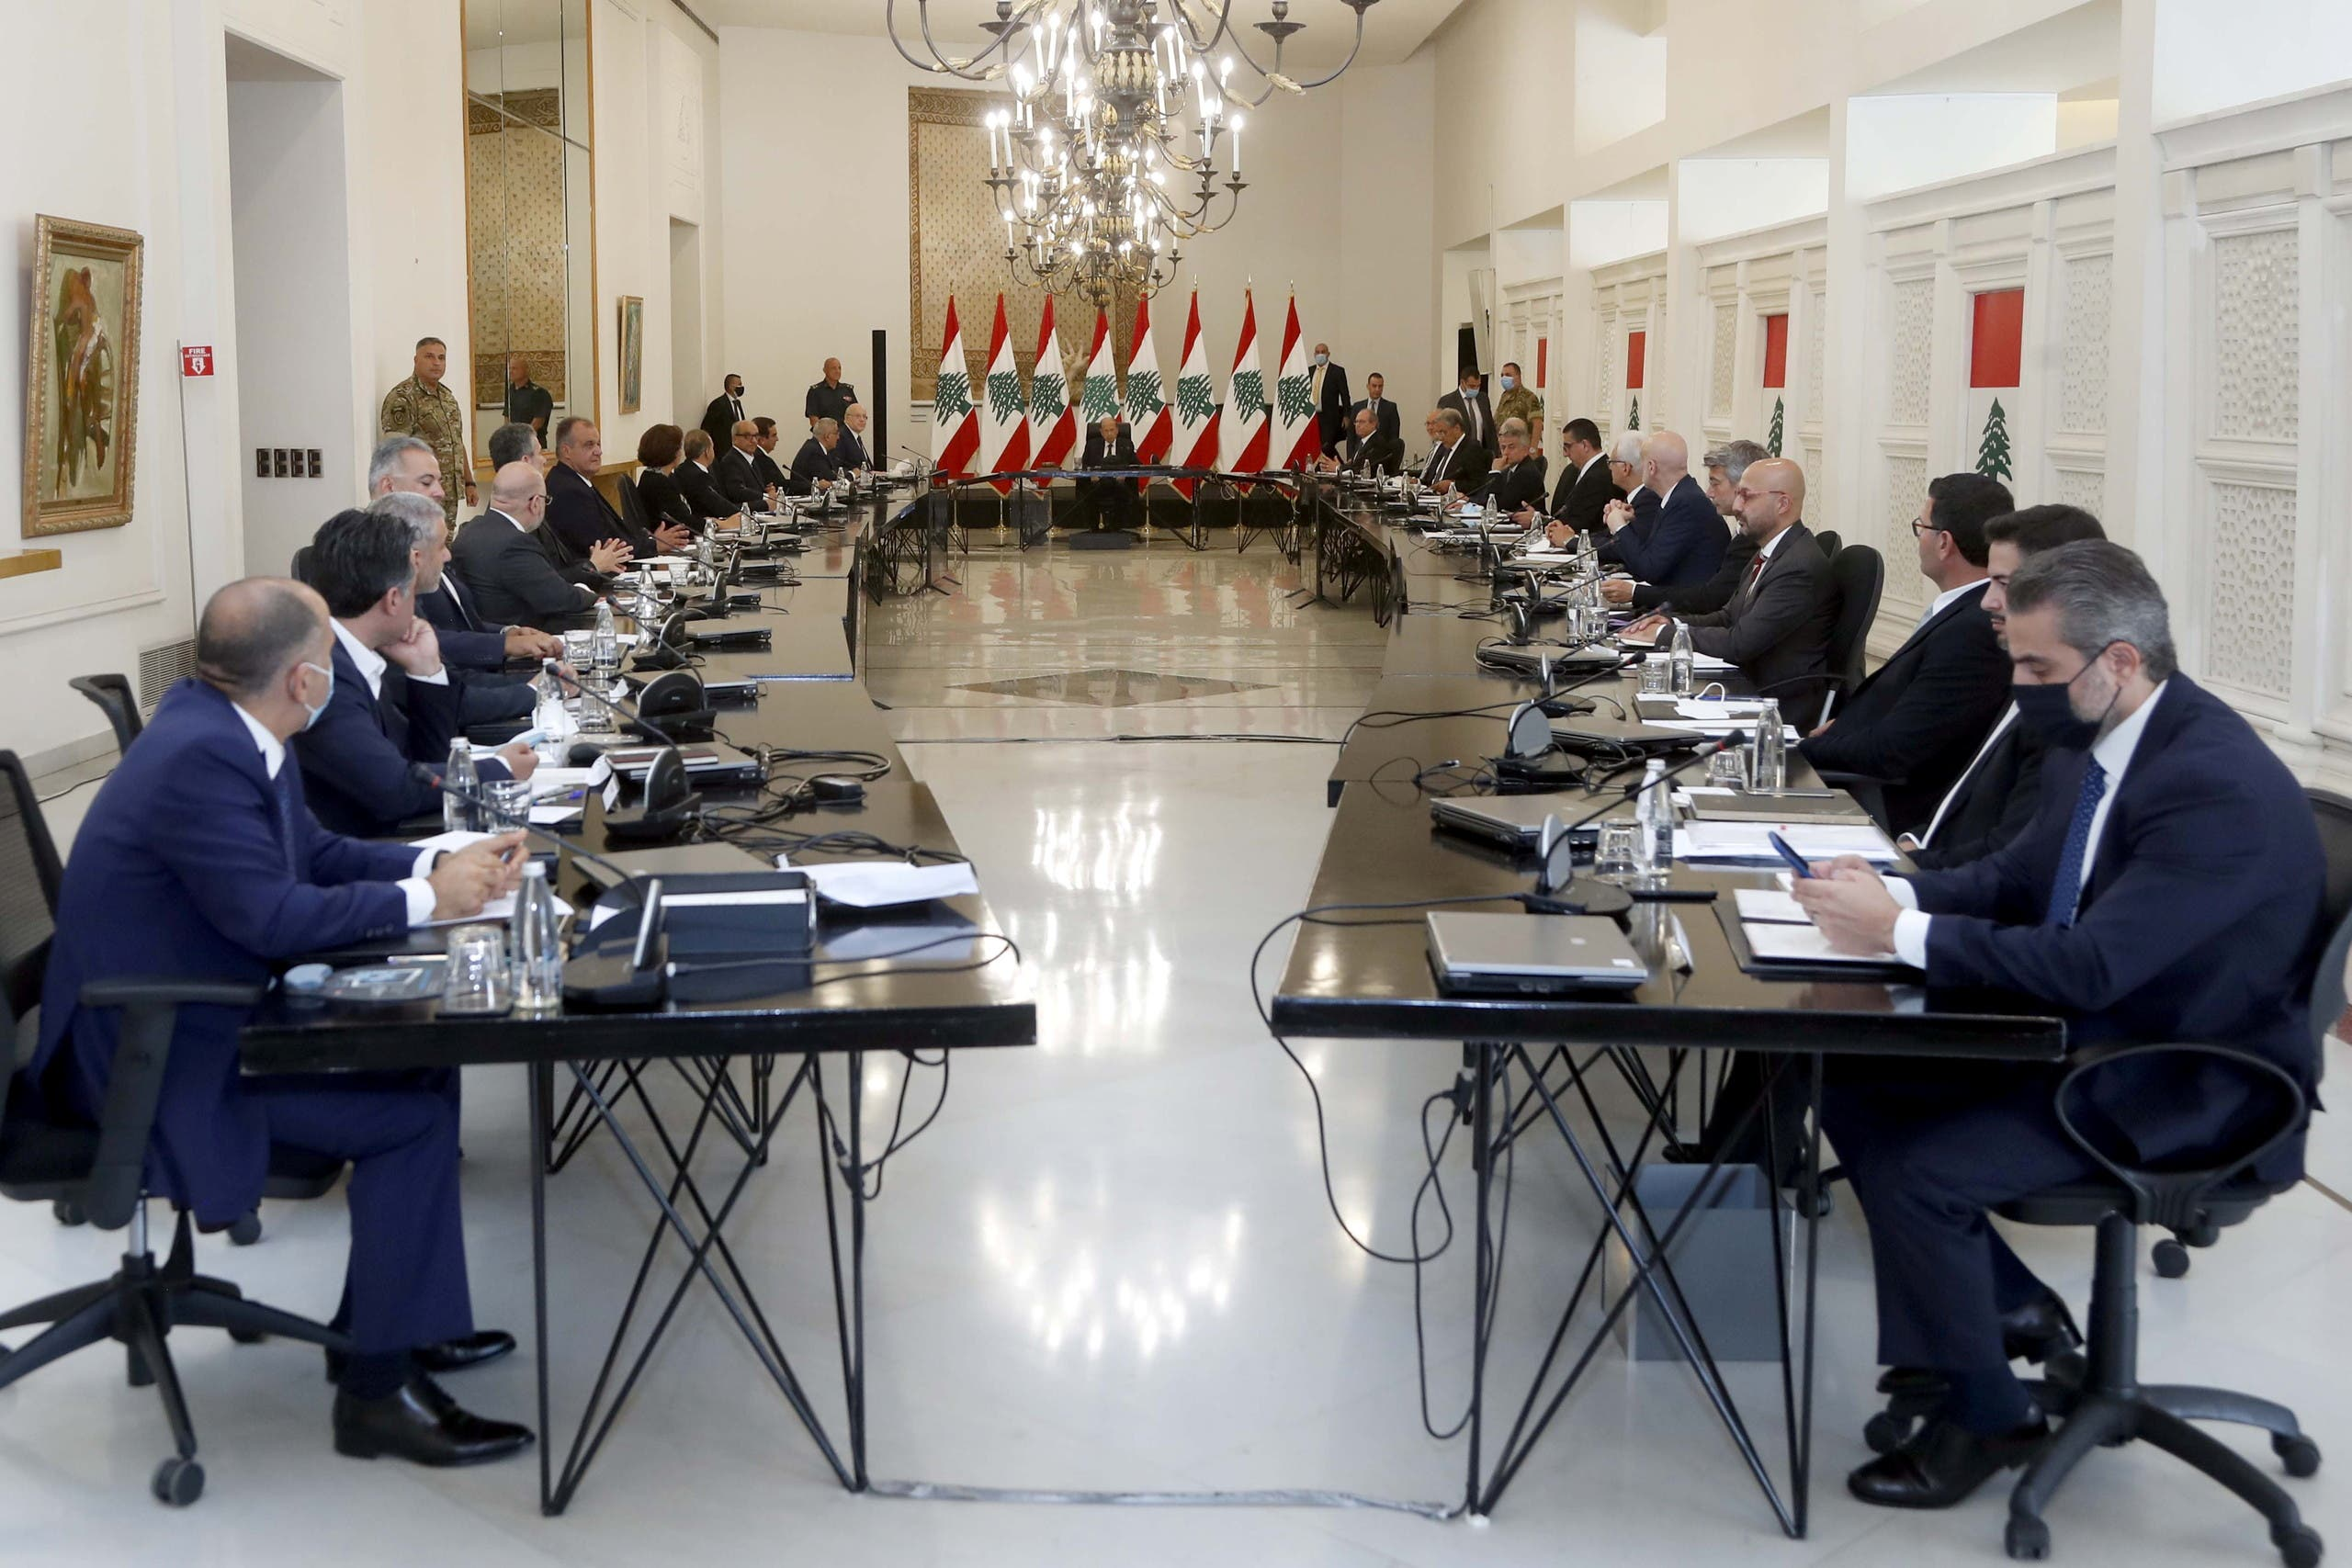 Lebanon's President Michel Aoun heads the new government's first cabinet meeting at the presidential palace in Baabda, Lebanon September 13, 2021. (Reuters)